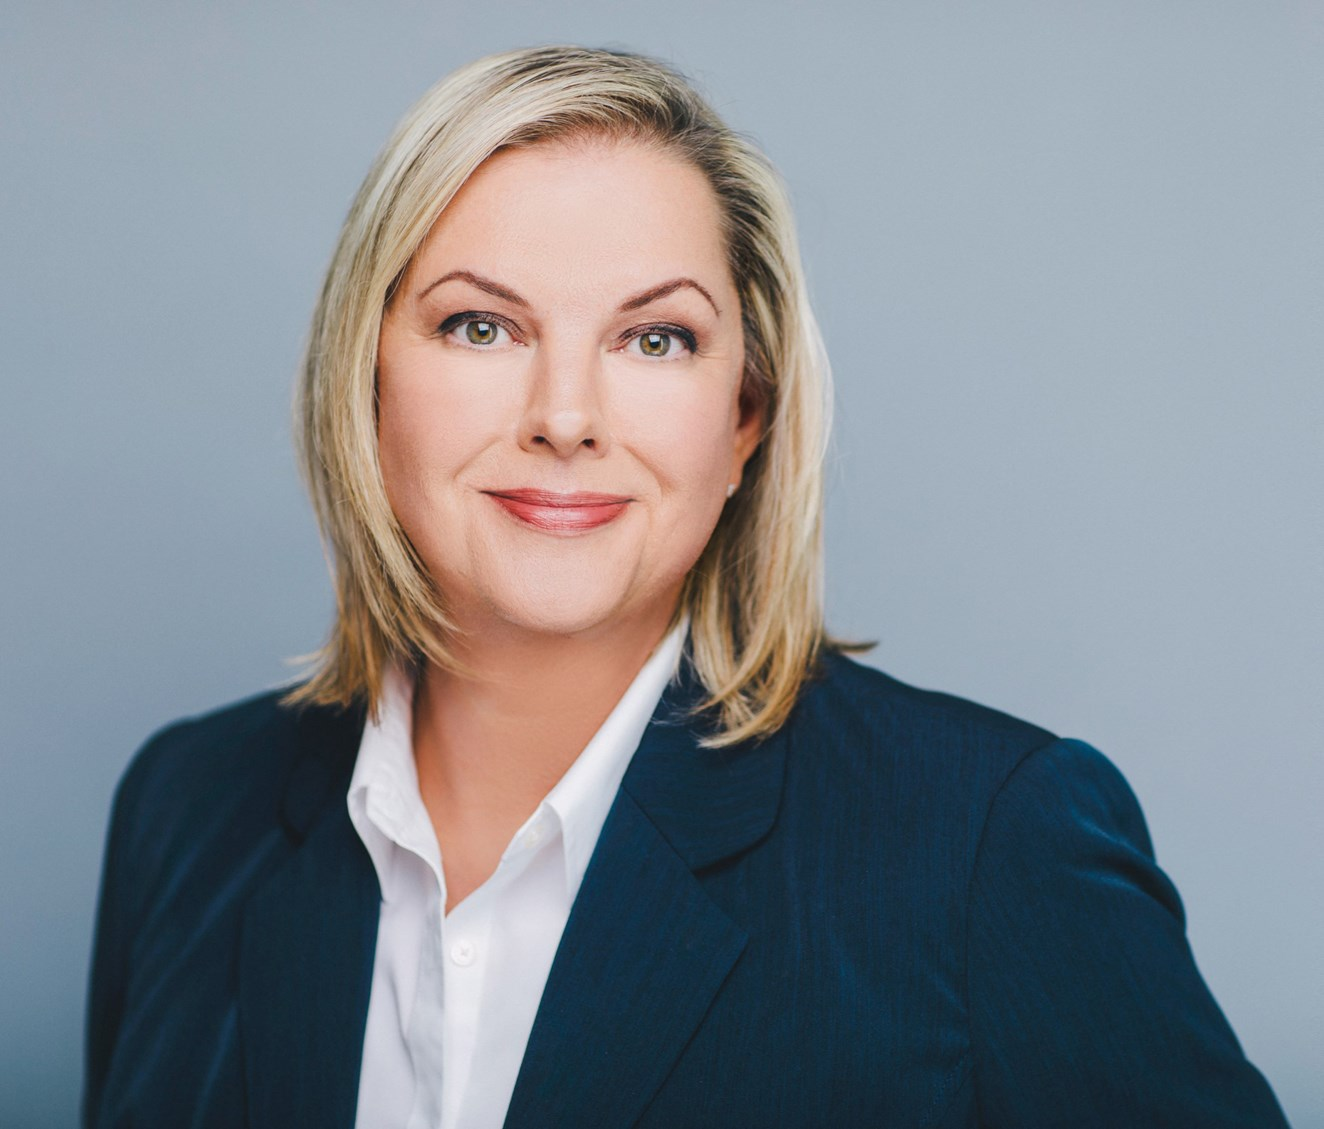 Network Rail Consulting opens new Canadian subsidiary: Susanne Manaigre, vice president, Network Rail Consulting